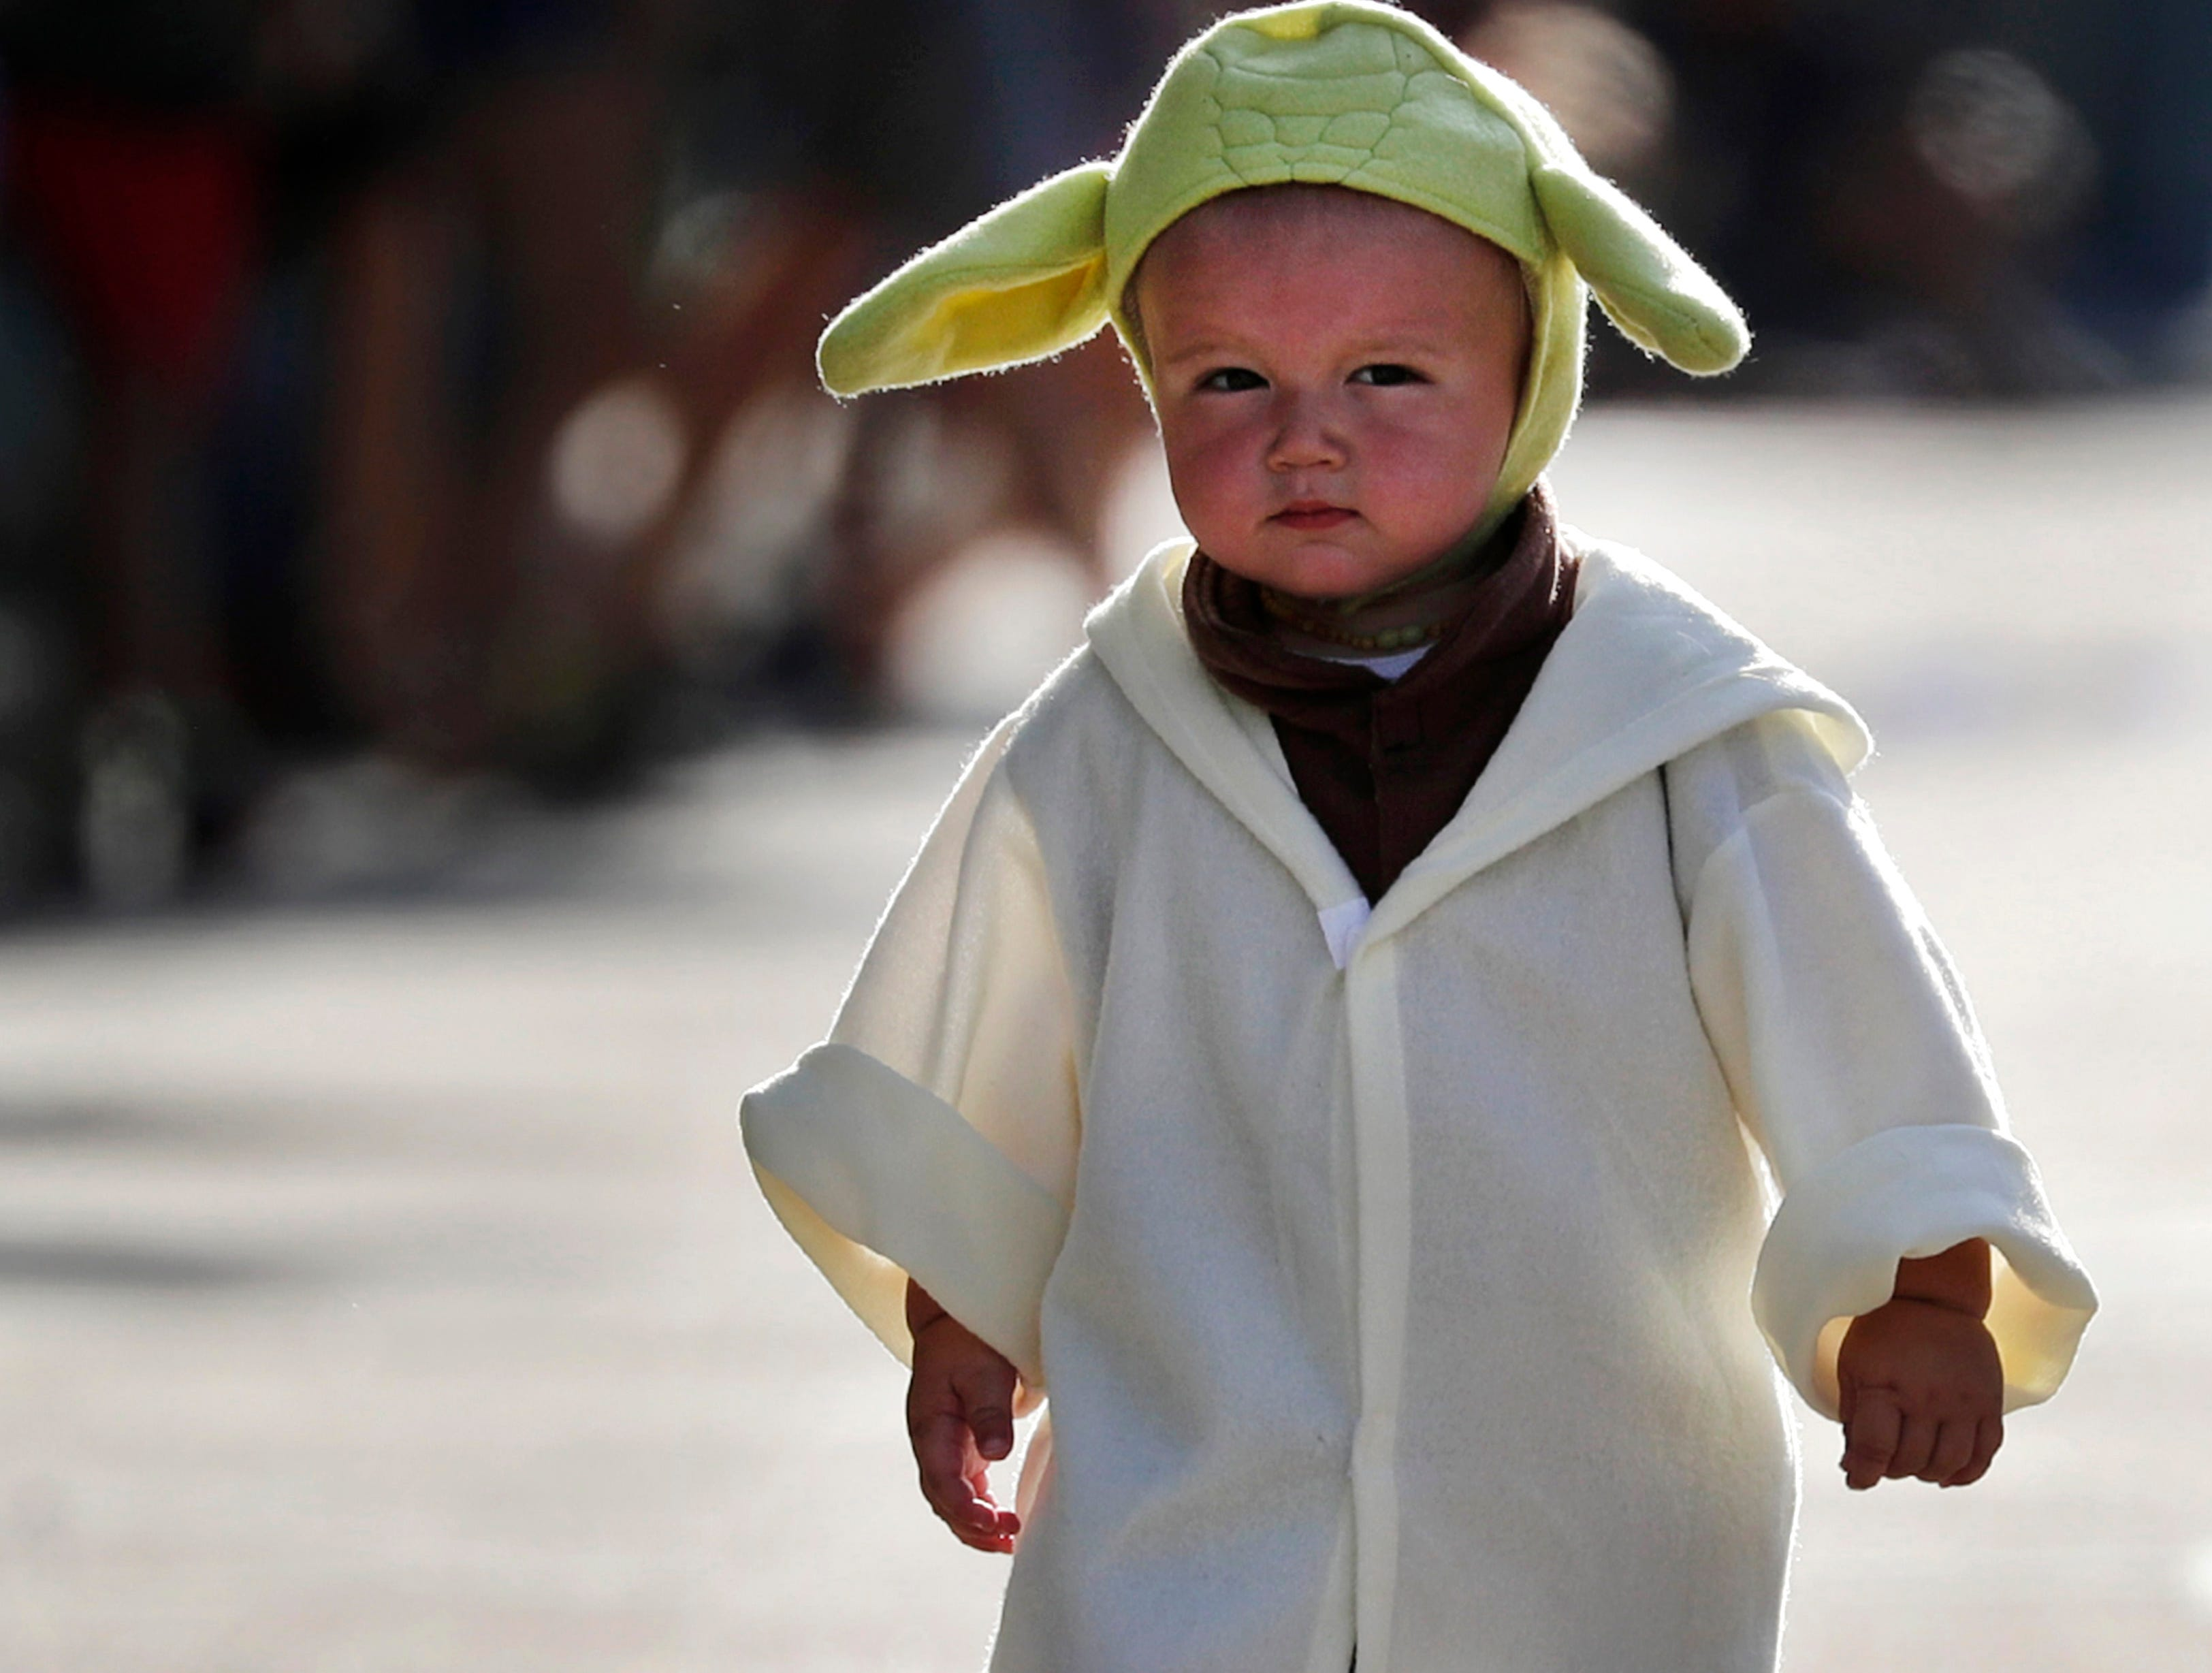 Theo Slye, 16 months old, makes his way down college avenue dressed as Yoda during the 10th annual Children's Parade Wednesday, July 25, 2018, in Appleton, Wis. Danny Damiani/USA TODAY NETWORK-Wisconsin